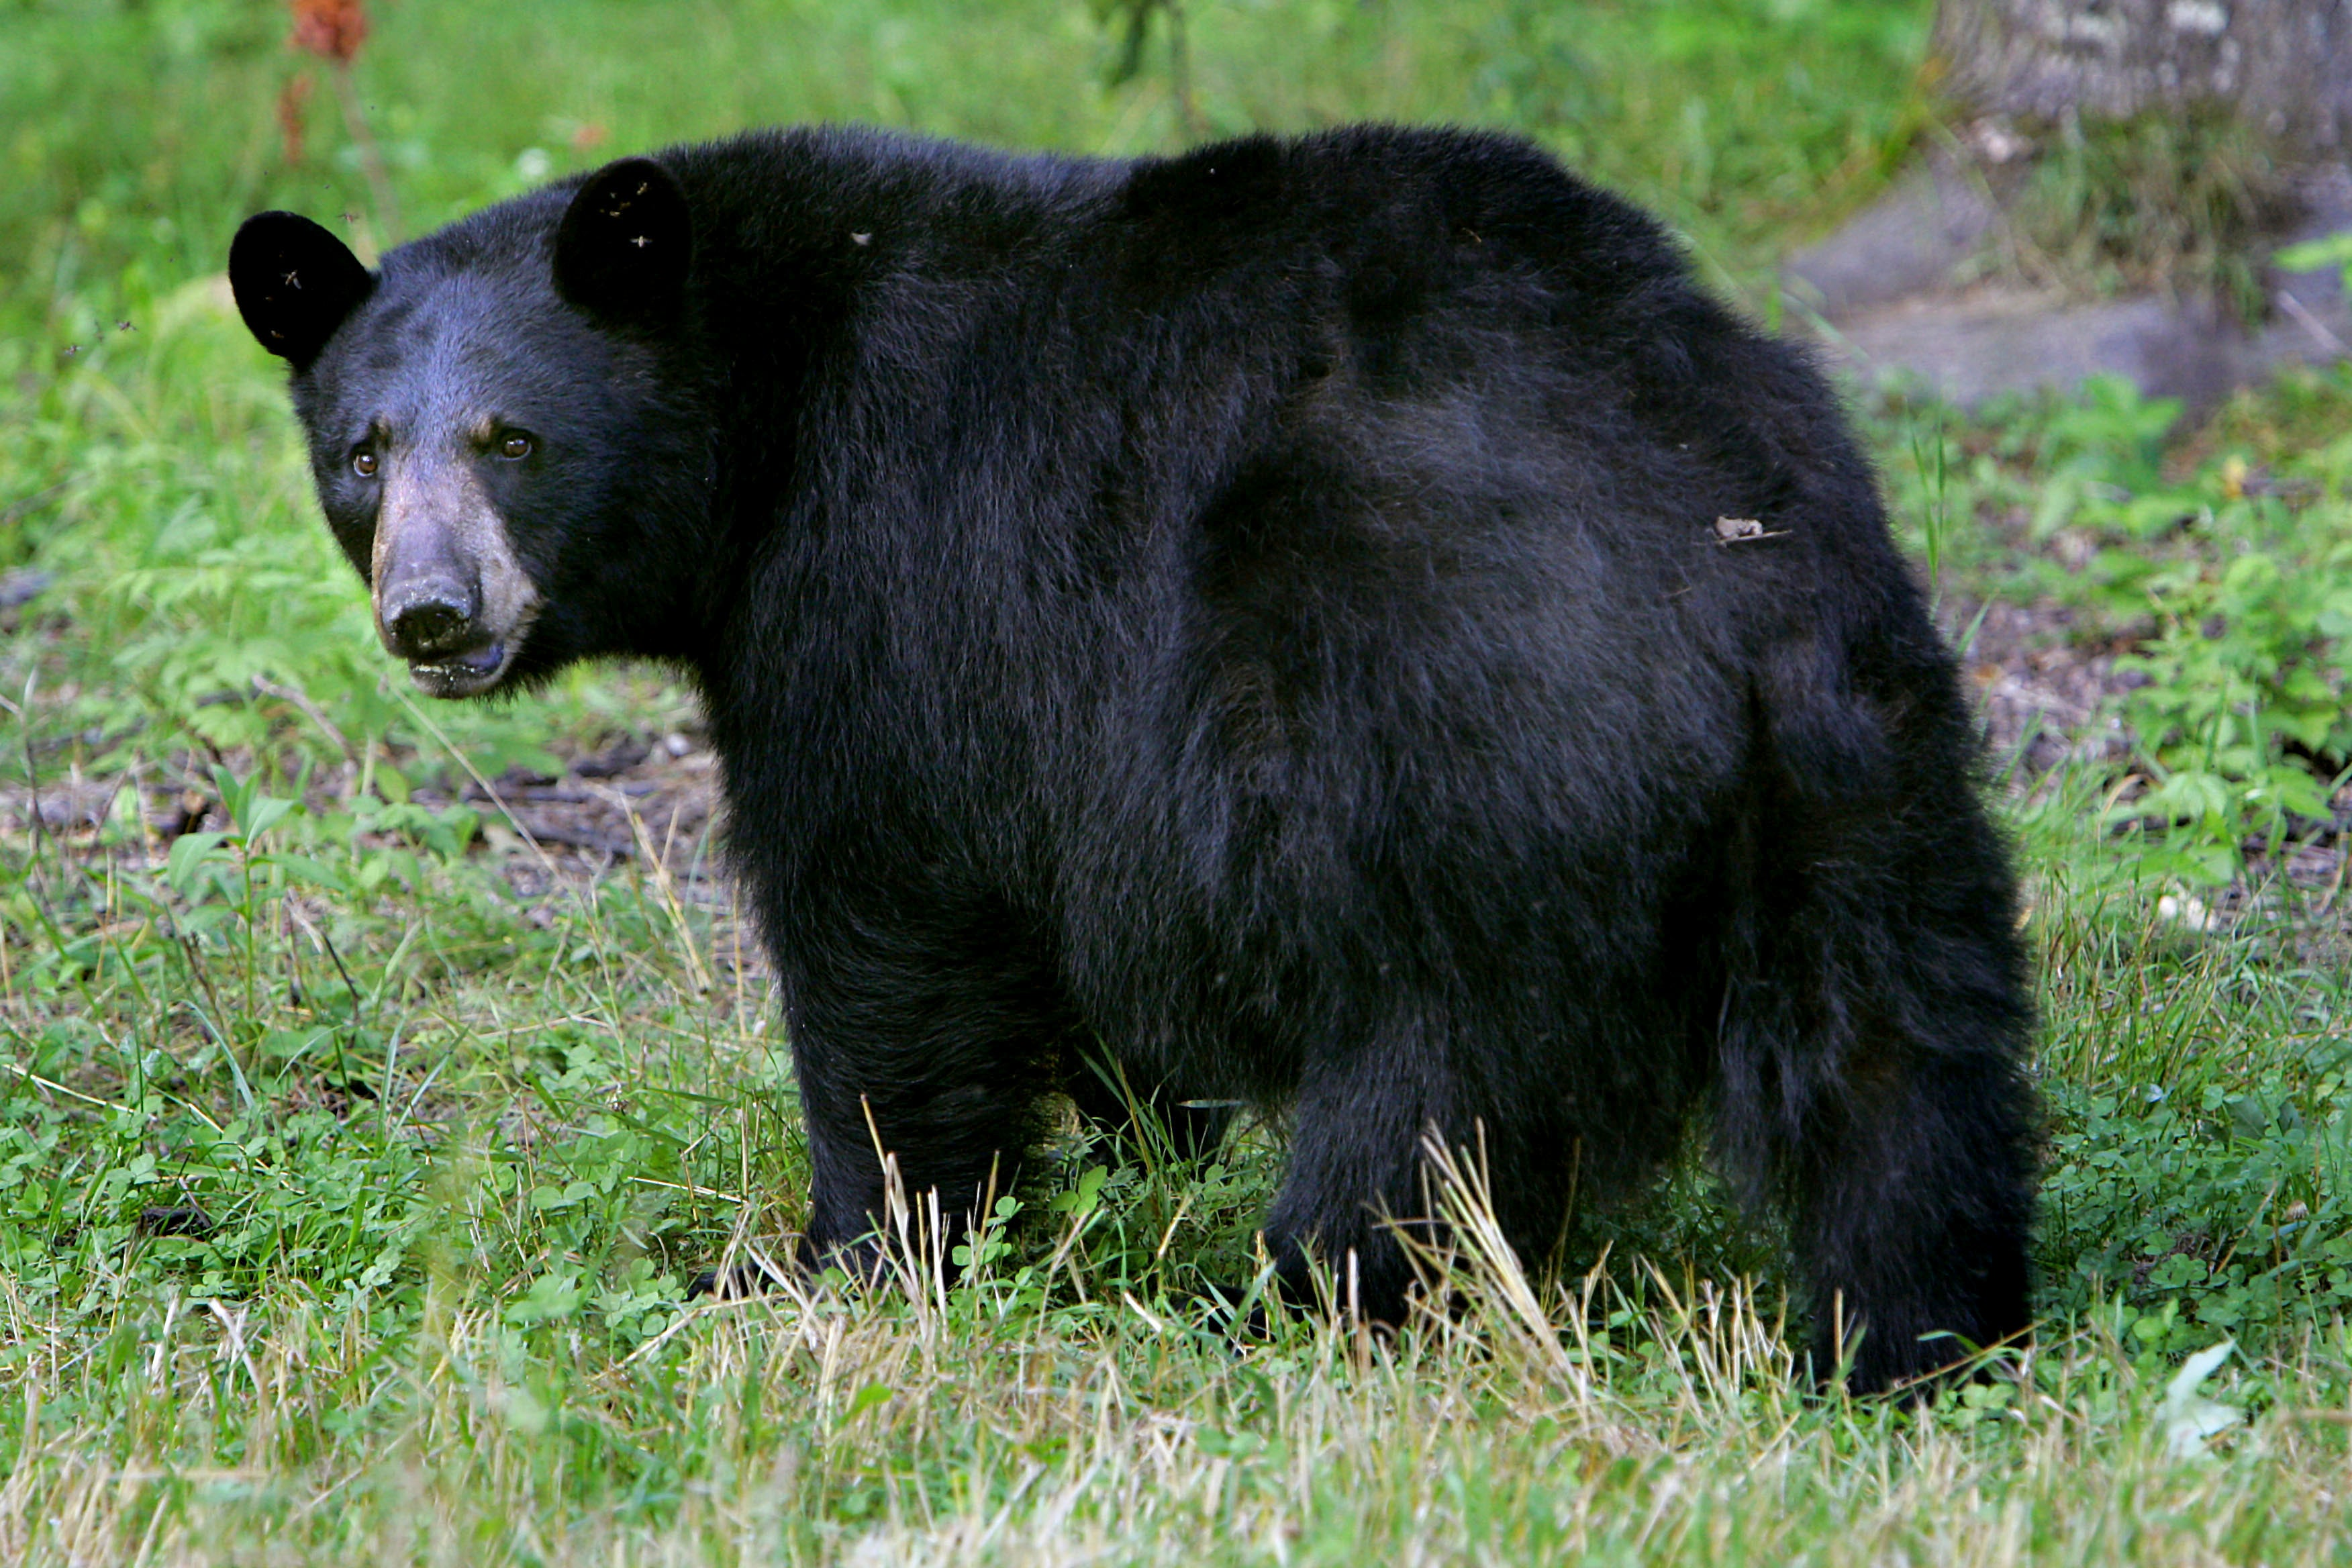 A black bear in Lyme, N.H.